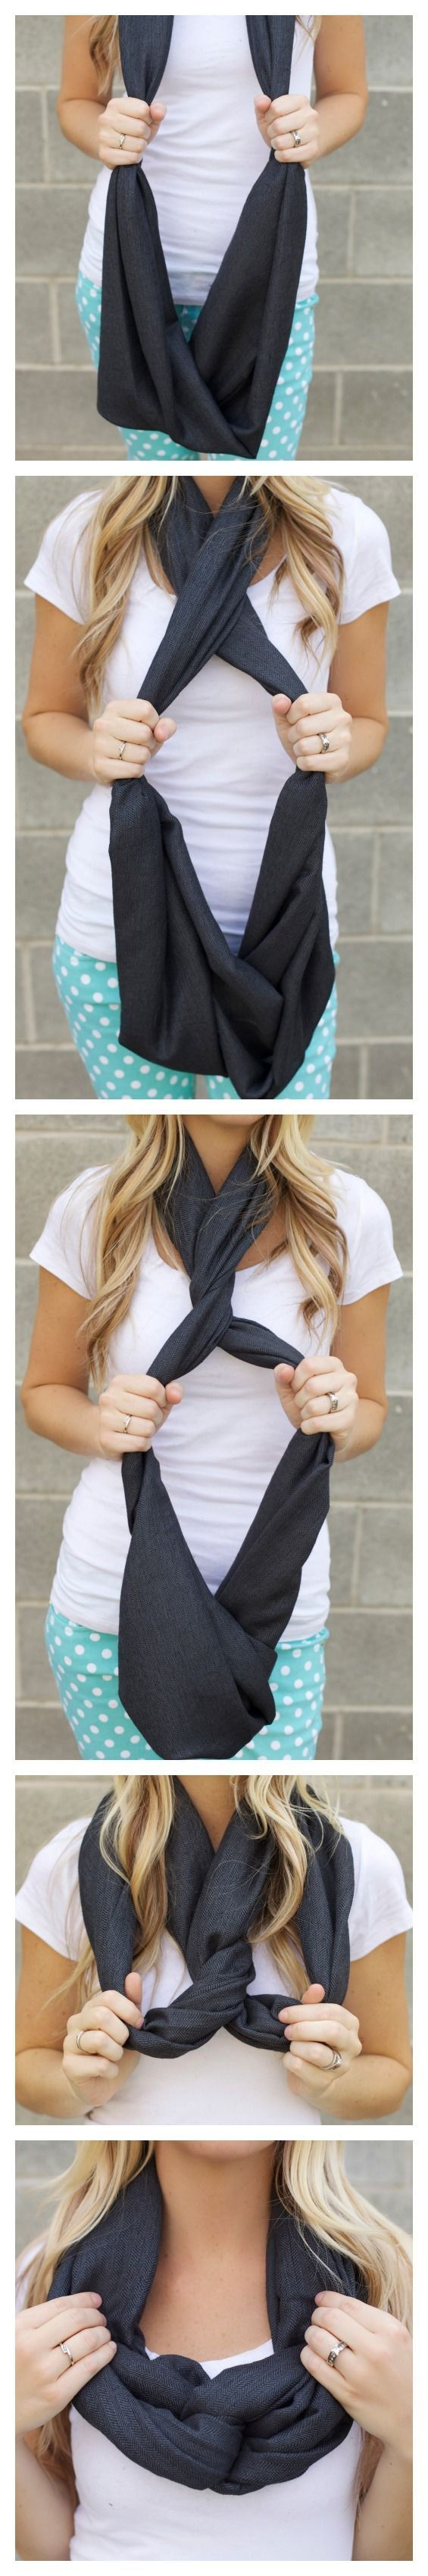 Another way to tie an infinity scarf - I haven't seen this one before. - pretiffy